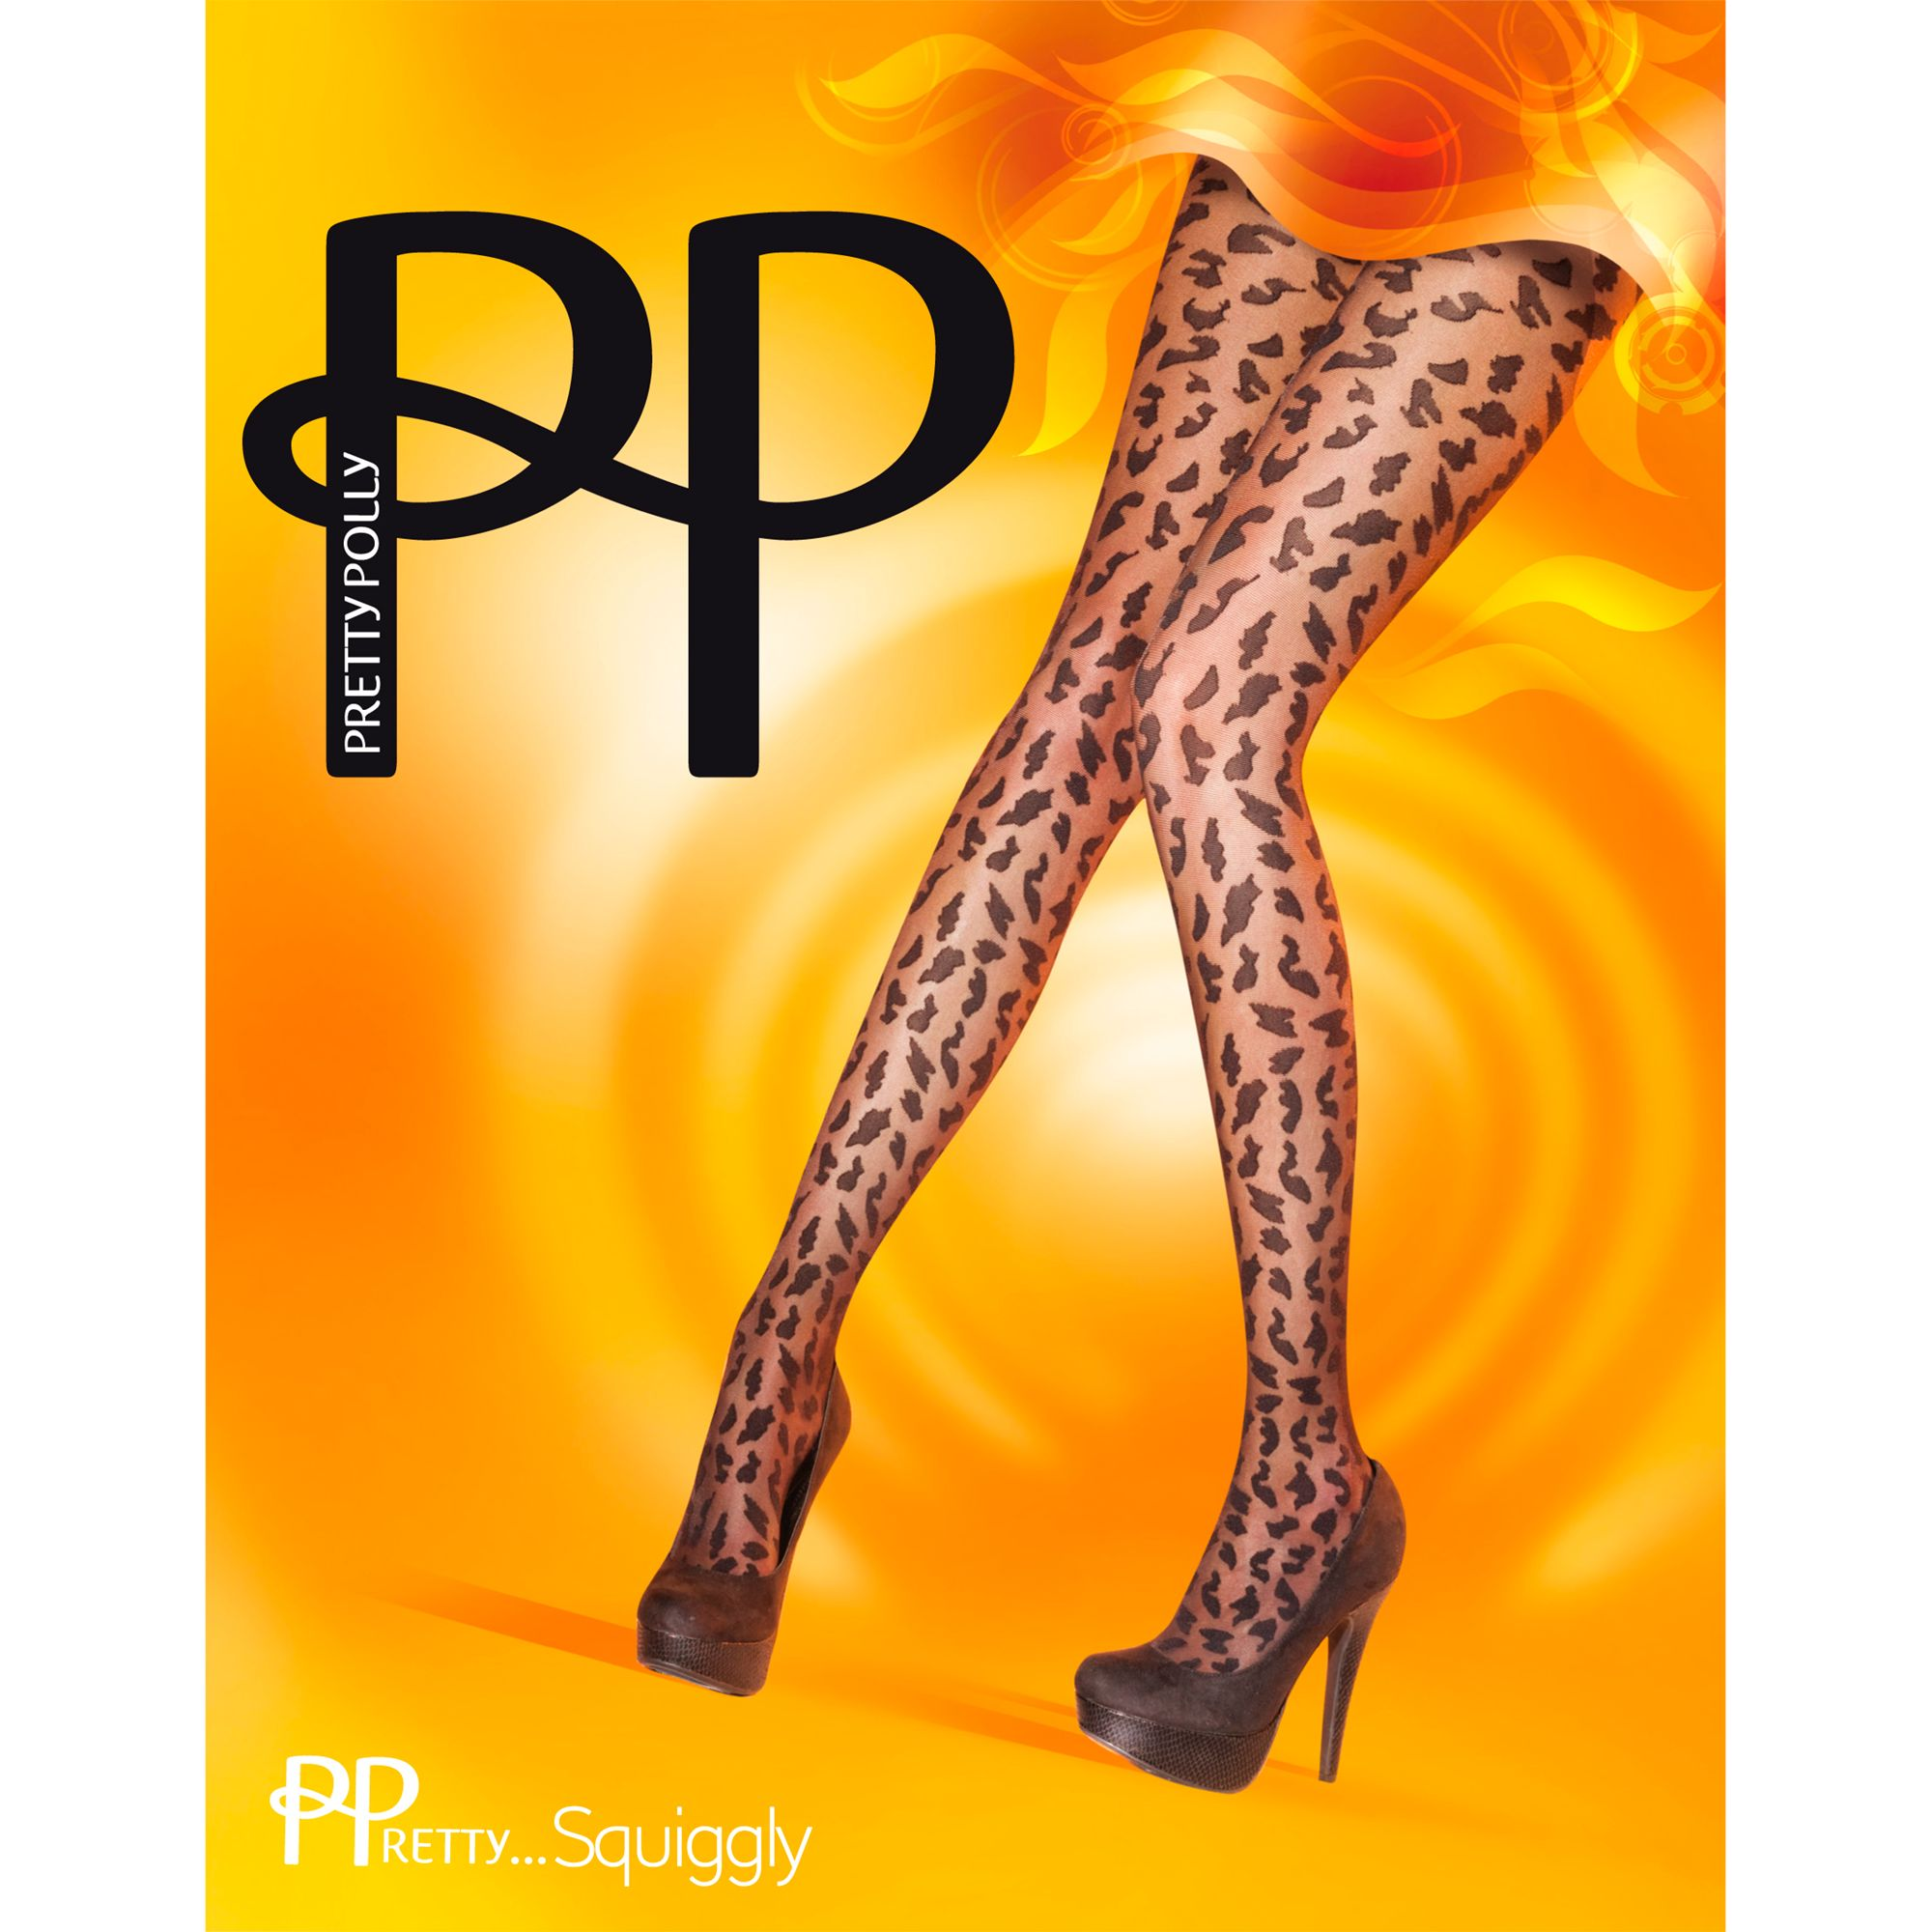 Pretty Polly Pretty Squiggly Tights, Black